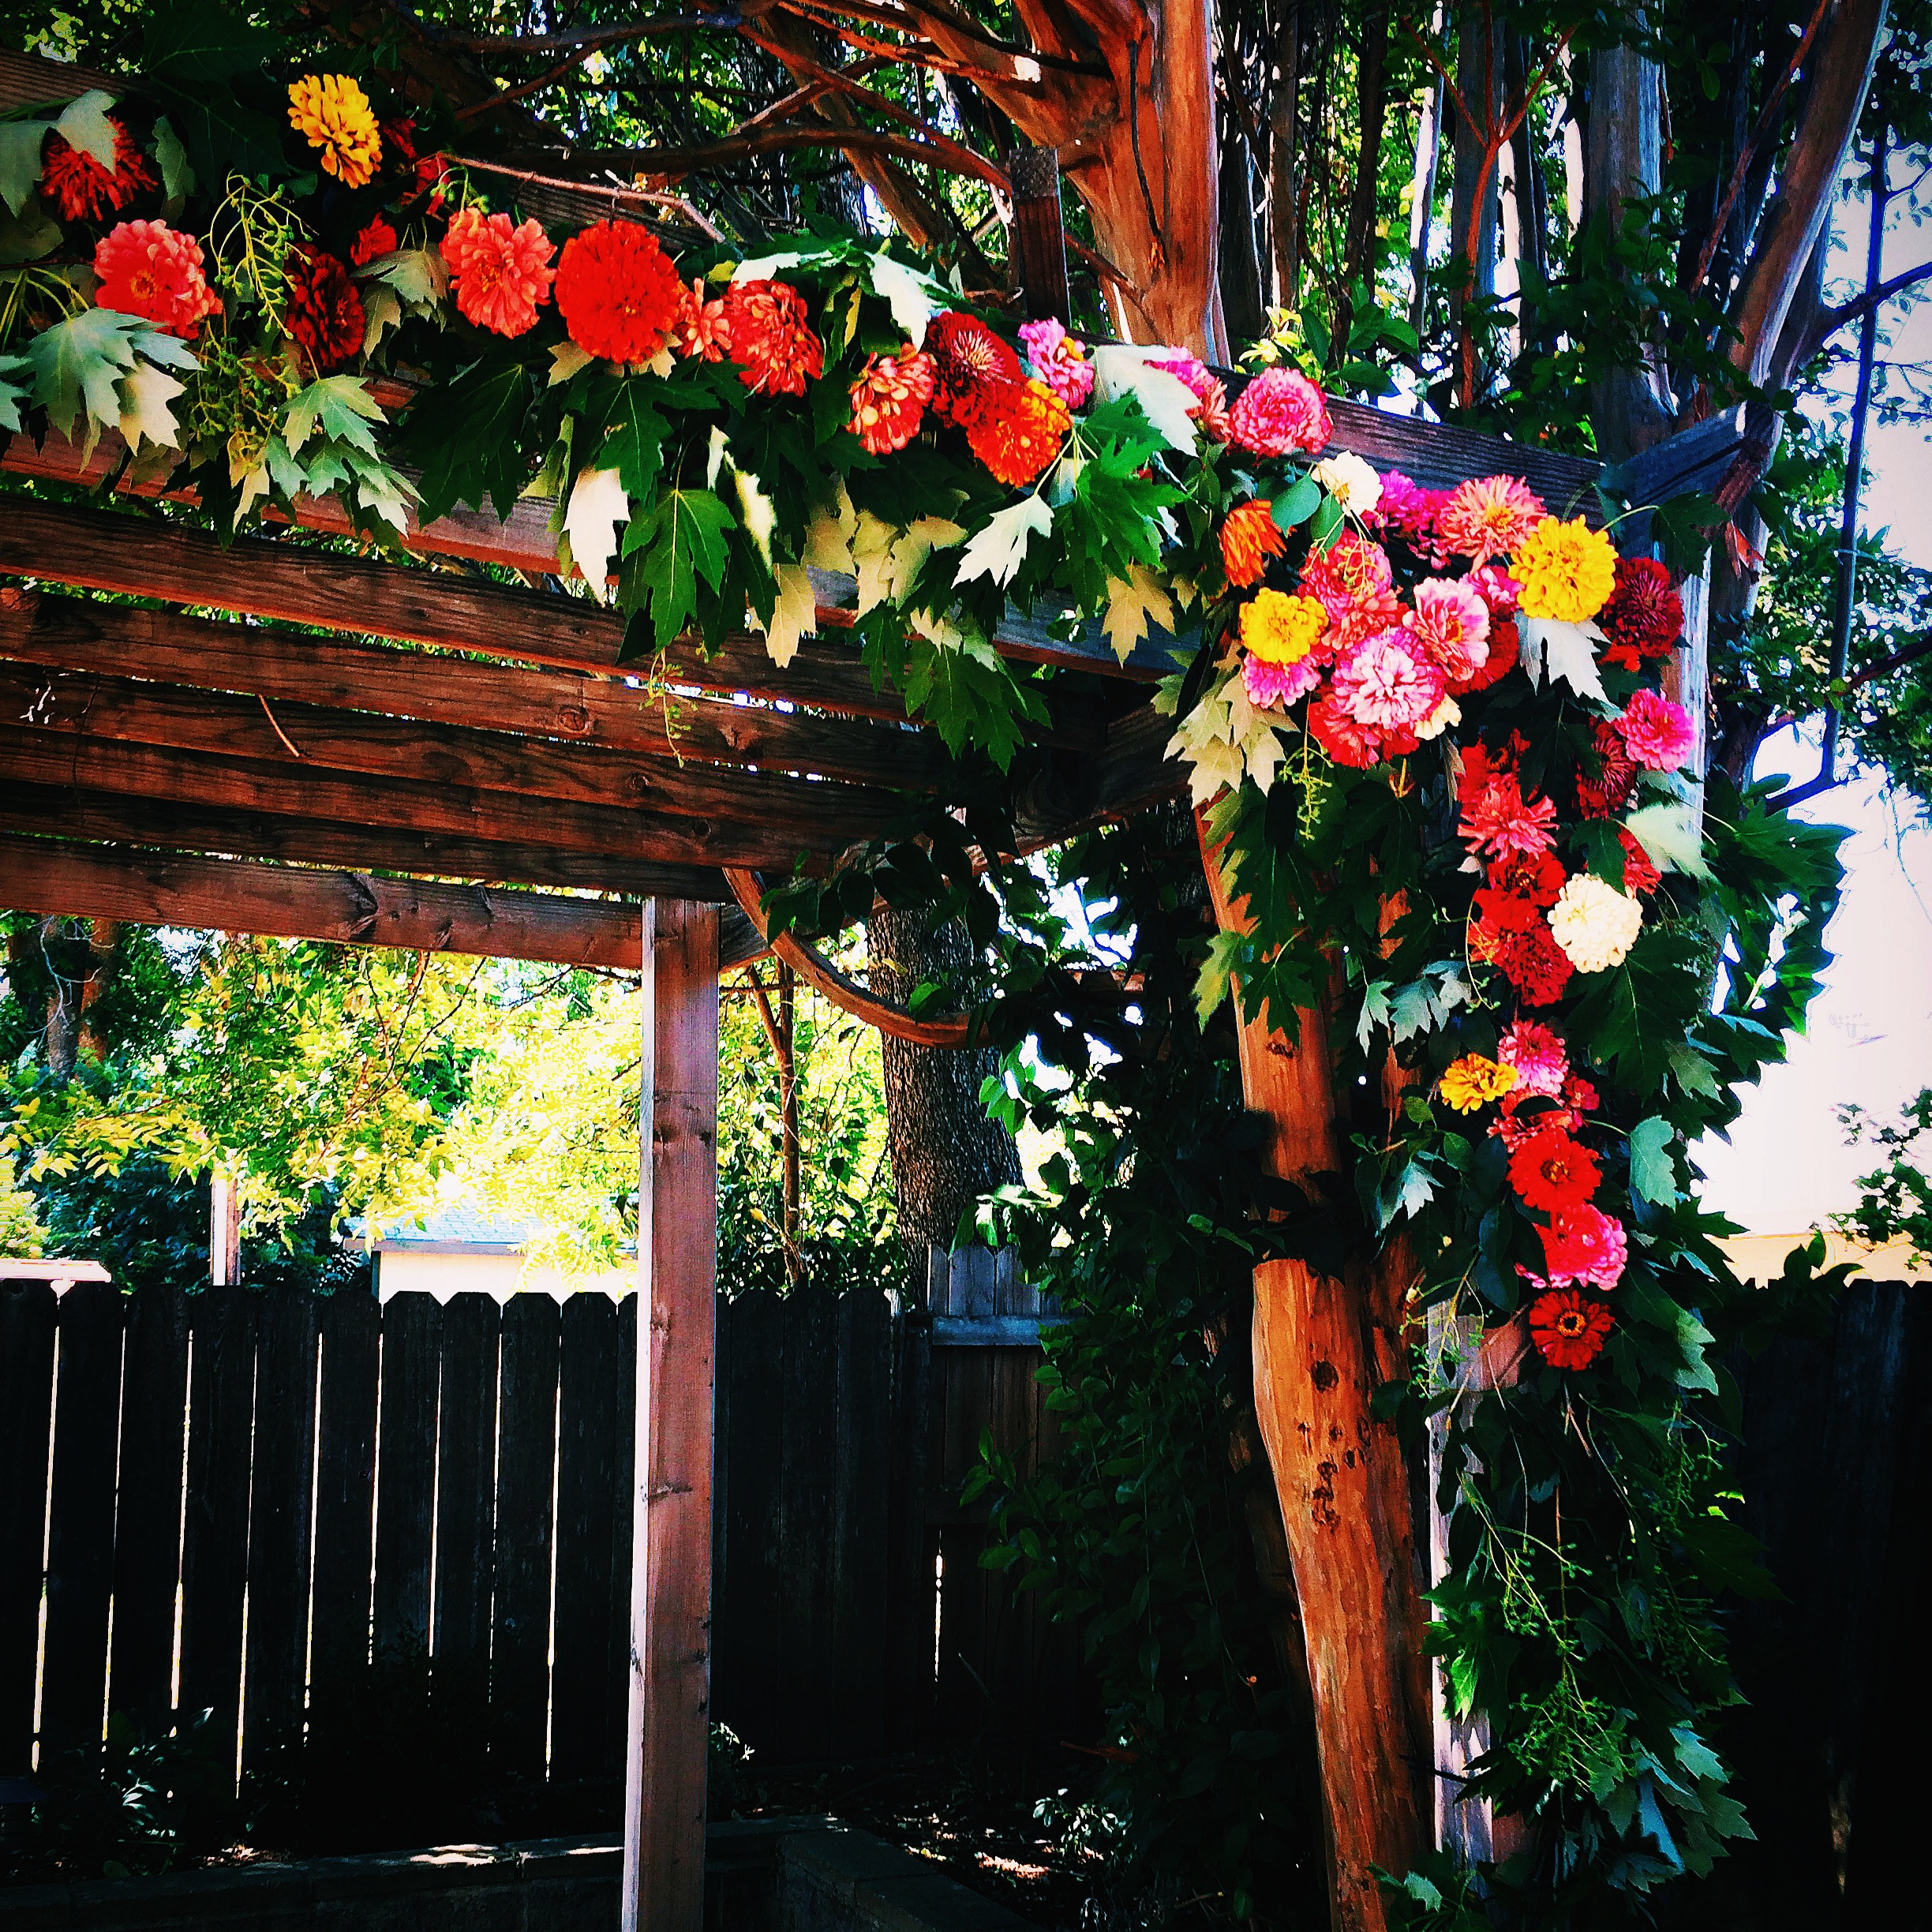 And then there was this bright backyard arch...